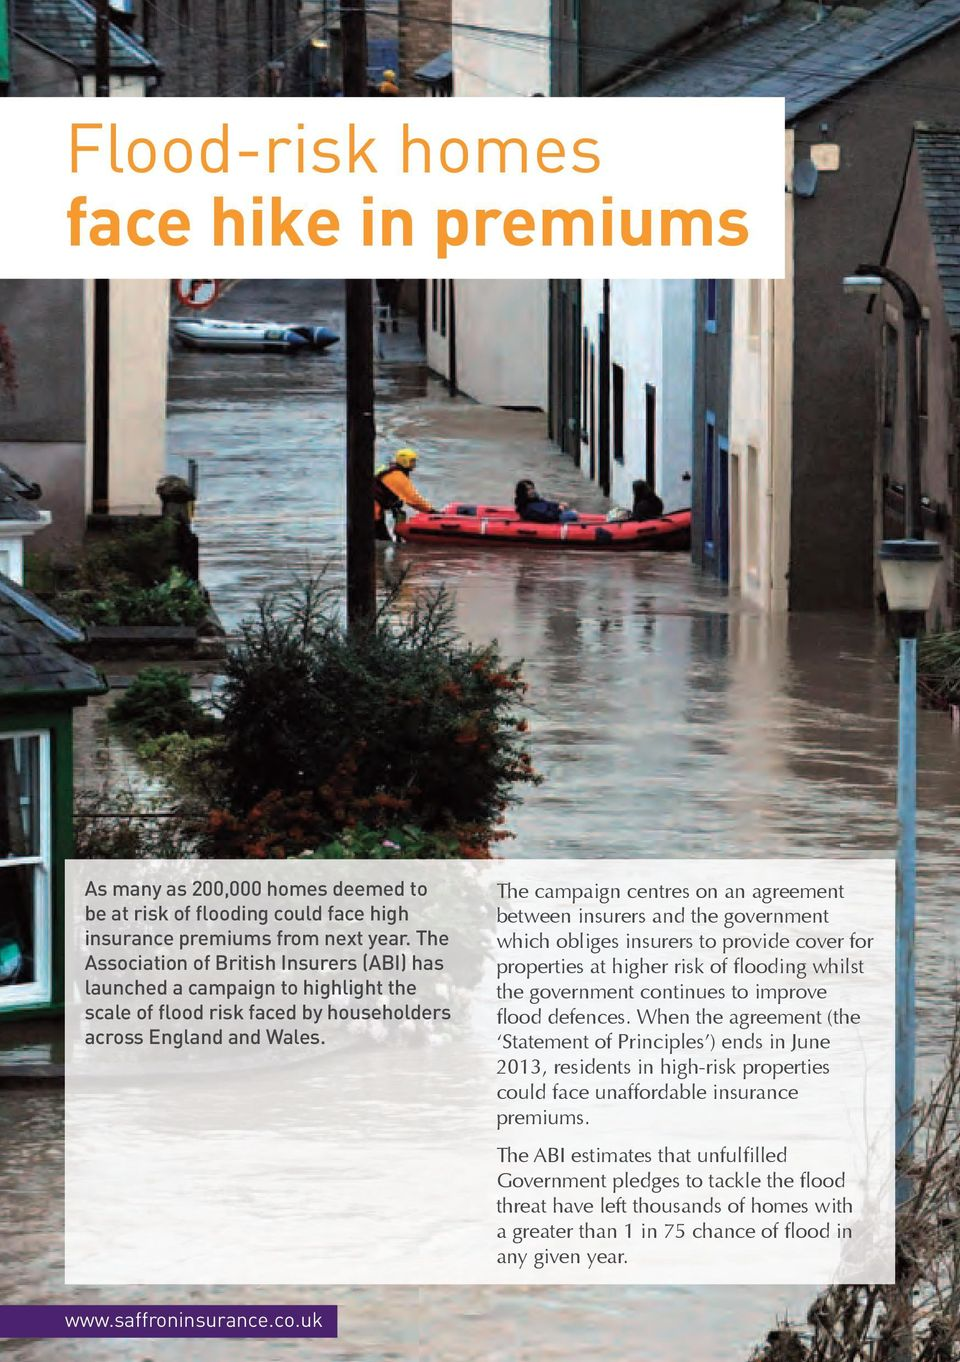 The campaign centres on an agreement between insurers and the government which obliges insurers to provide cover for properties at higher risk of flooding whilst the government continues to improve